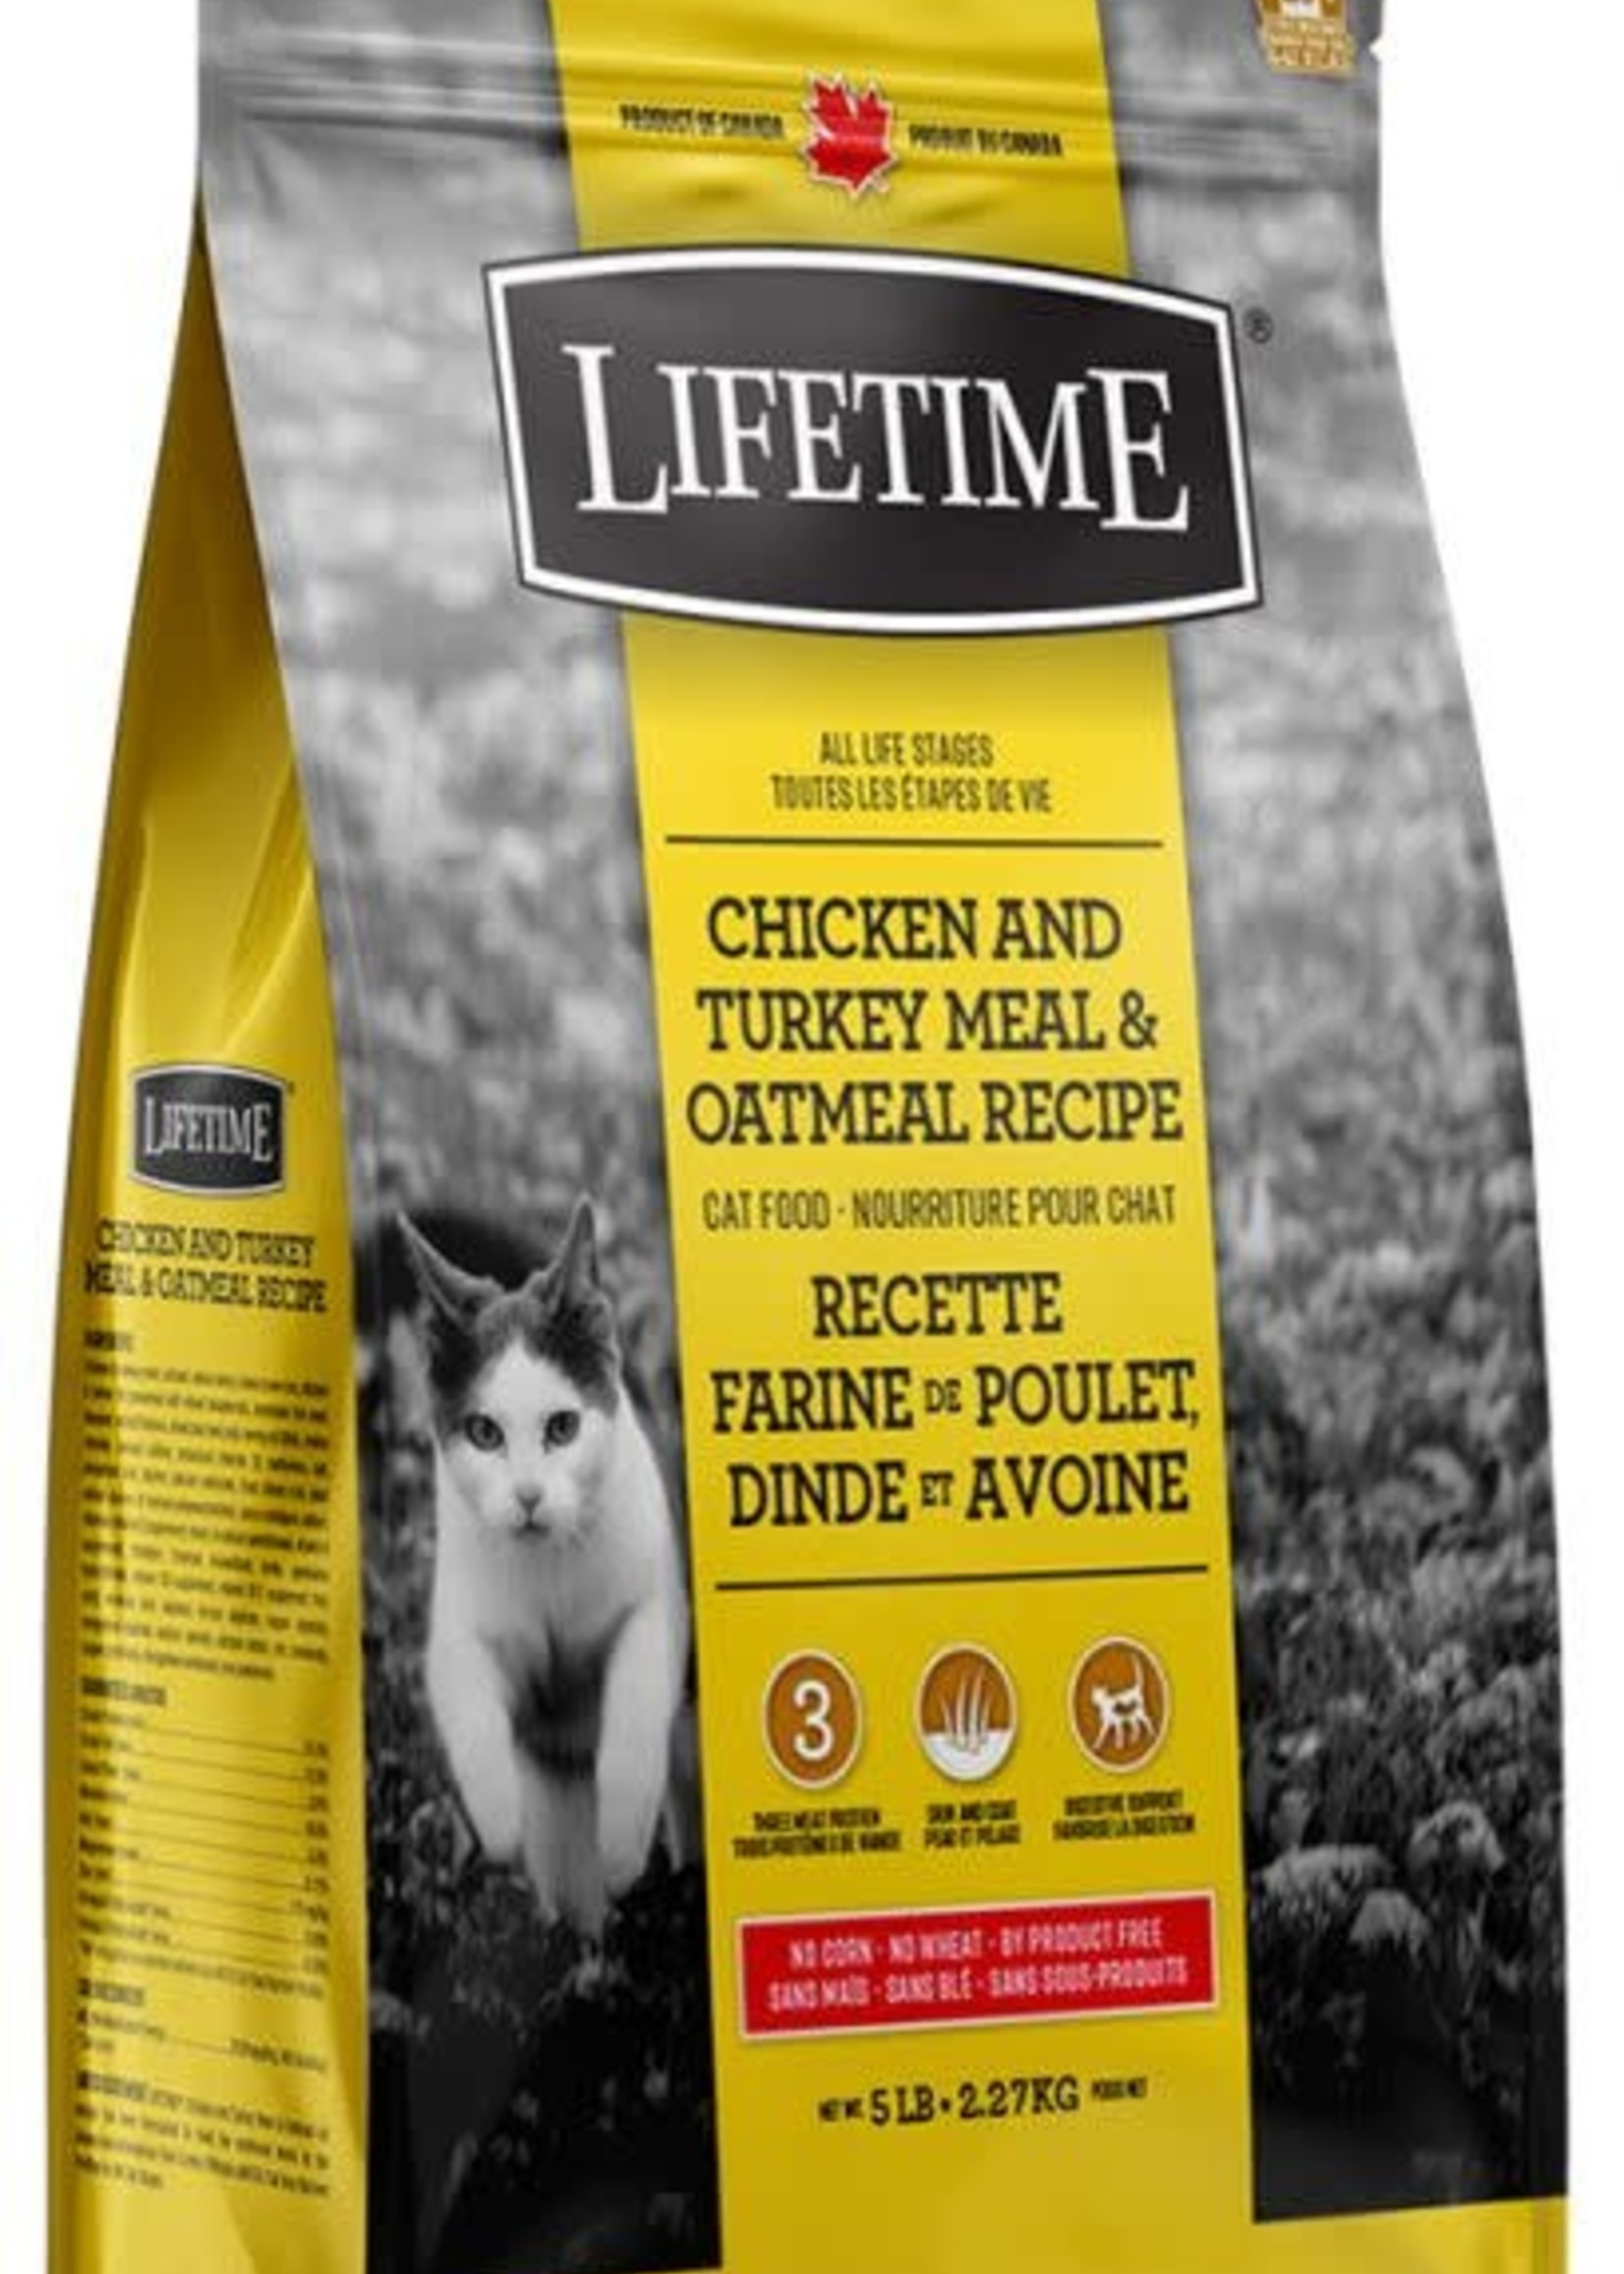 LifeTime® LifeTime Chicken and Turkey Meal & Oatmeal Recipe 5lbs